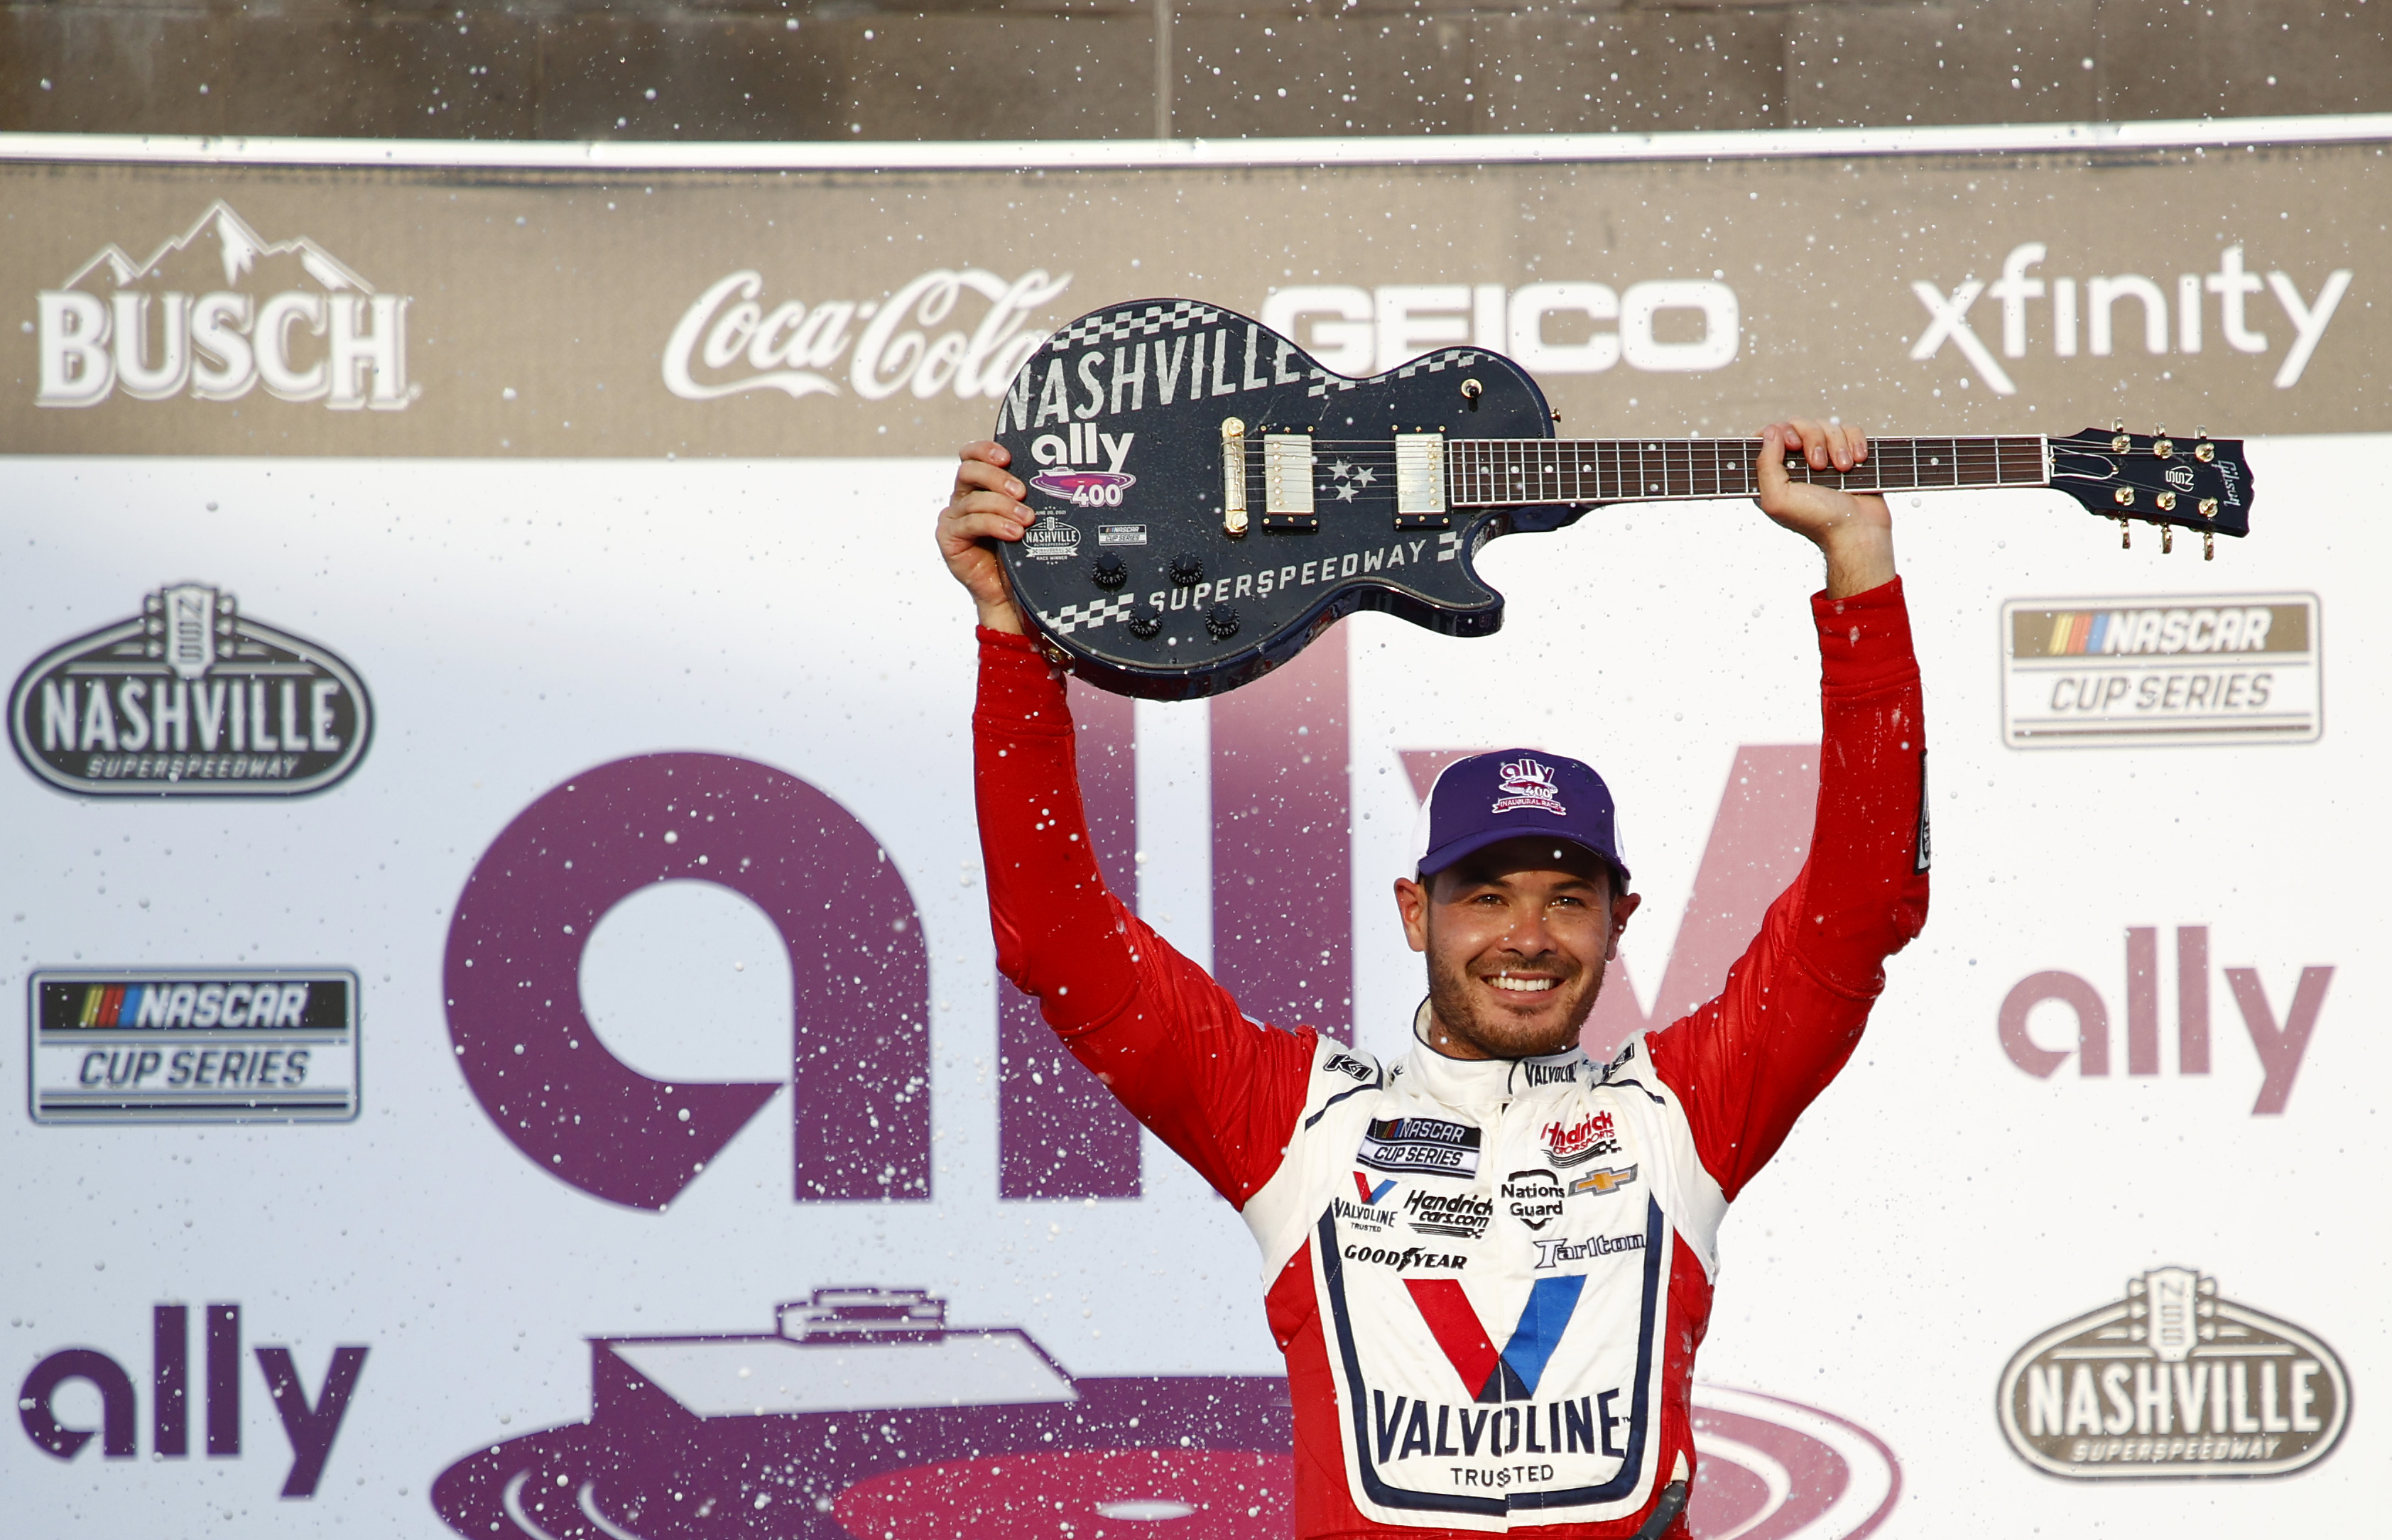 Kyle Larson, driver of the Valvoline Chevrolet, celebrates in victory lane after winning the NASCAR Cup Series Ally 400 at Nashville Superspeedway on June 20, 2021 in Lebanon, Tennessee.